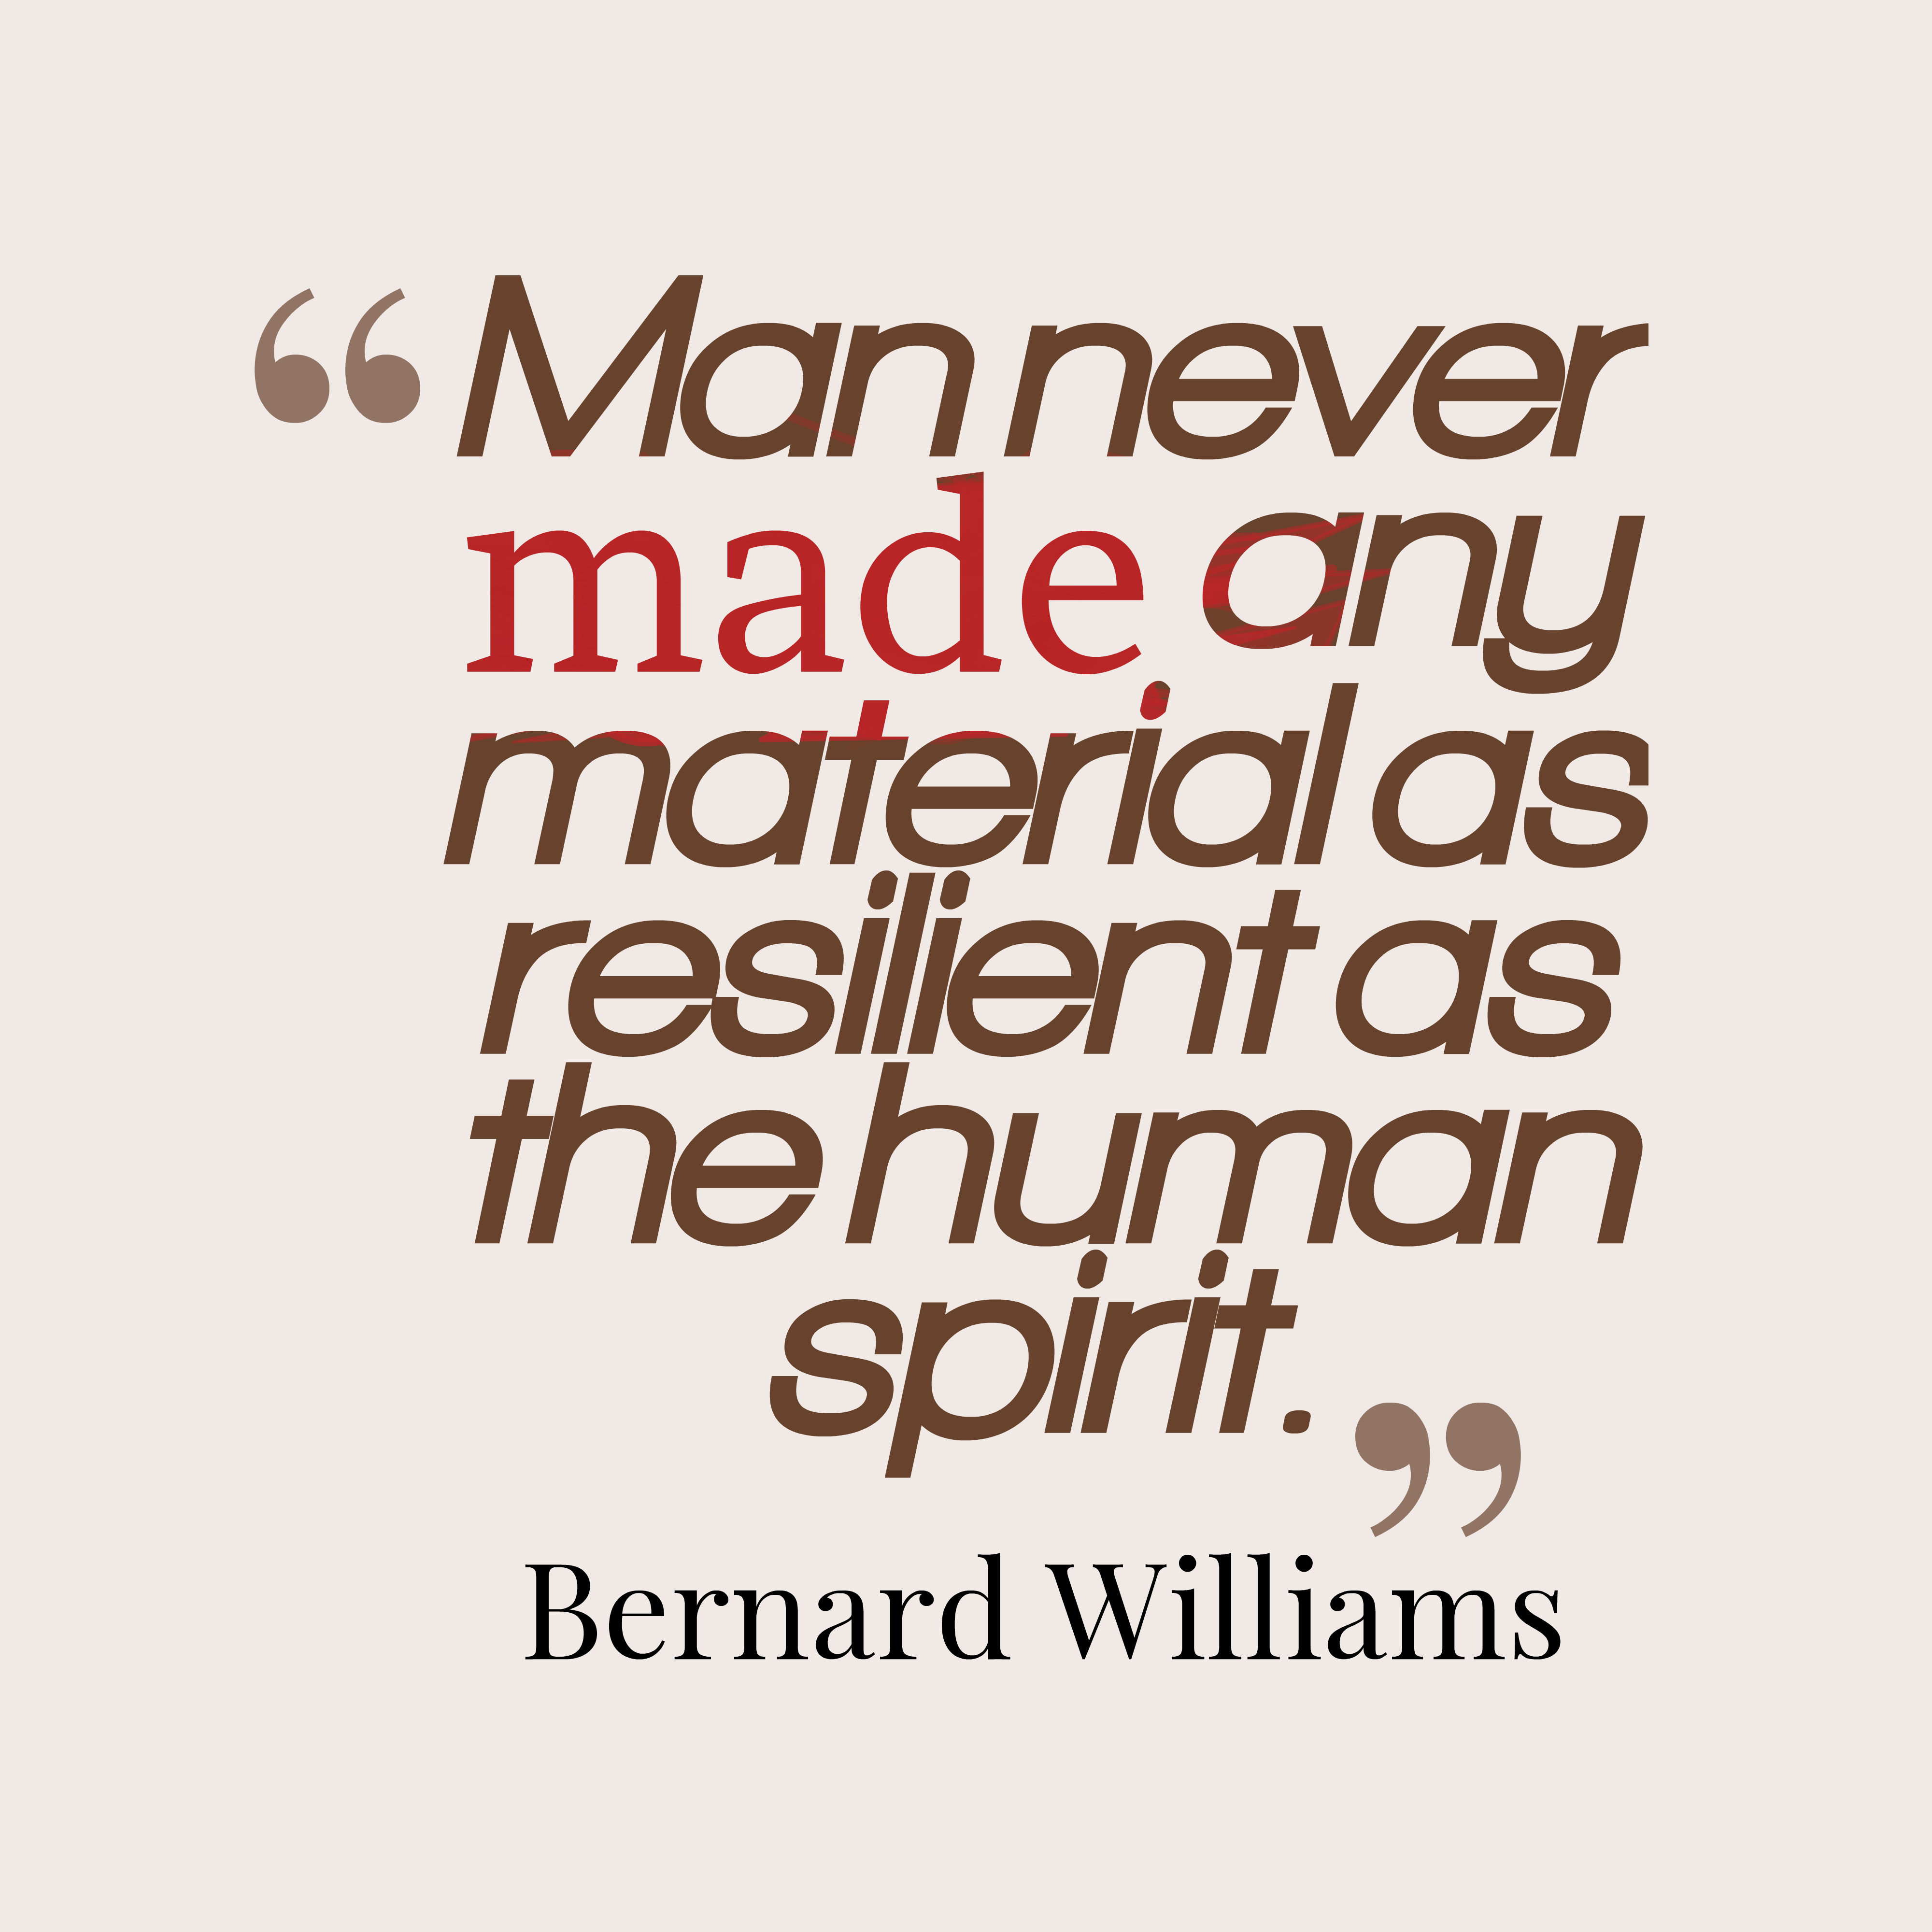 Bernard Williams Quote About Spirit